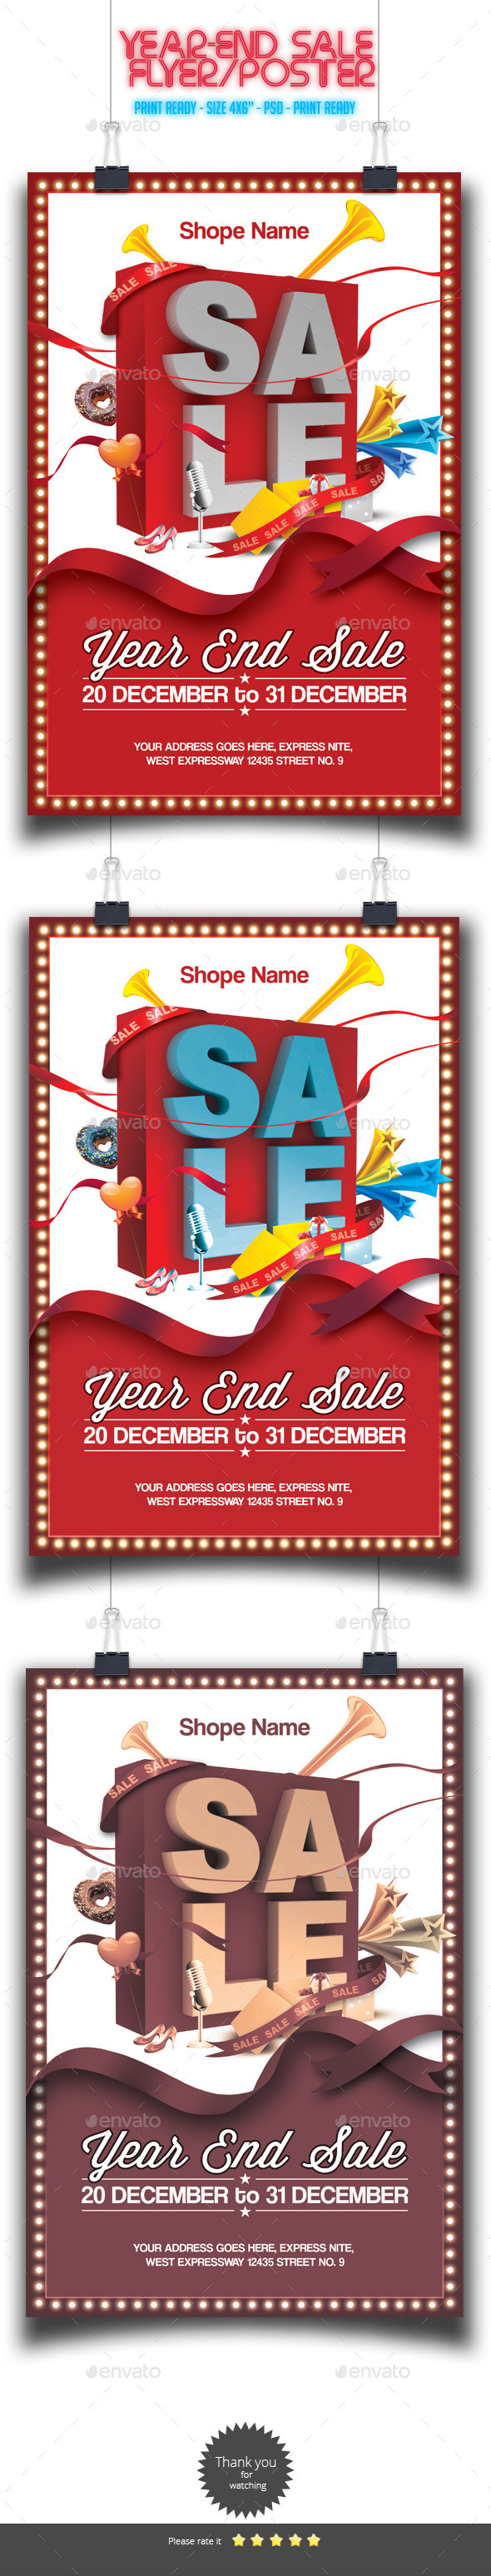 Year-End Sale Flyer/Poster - Holidays Events